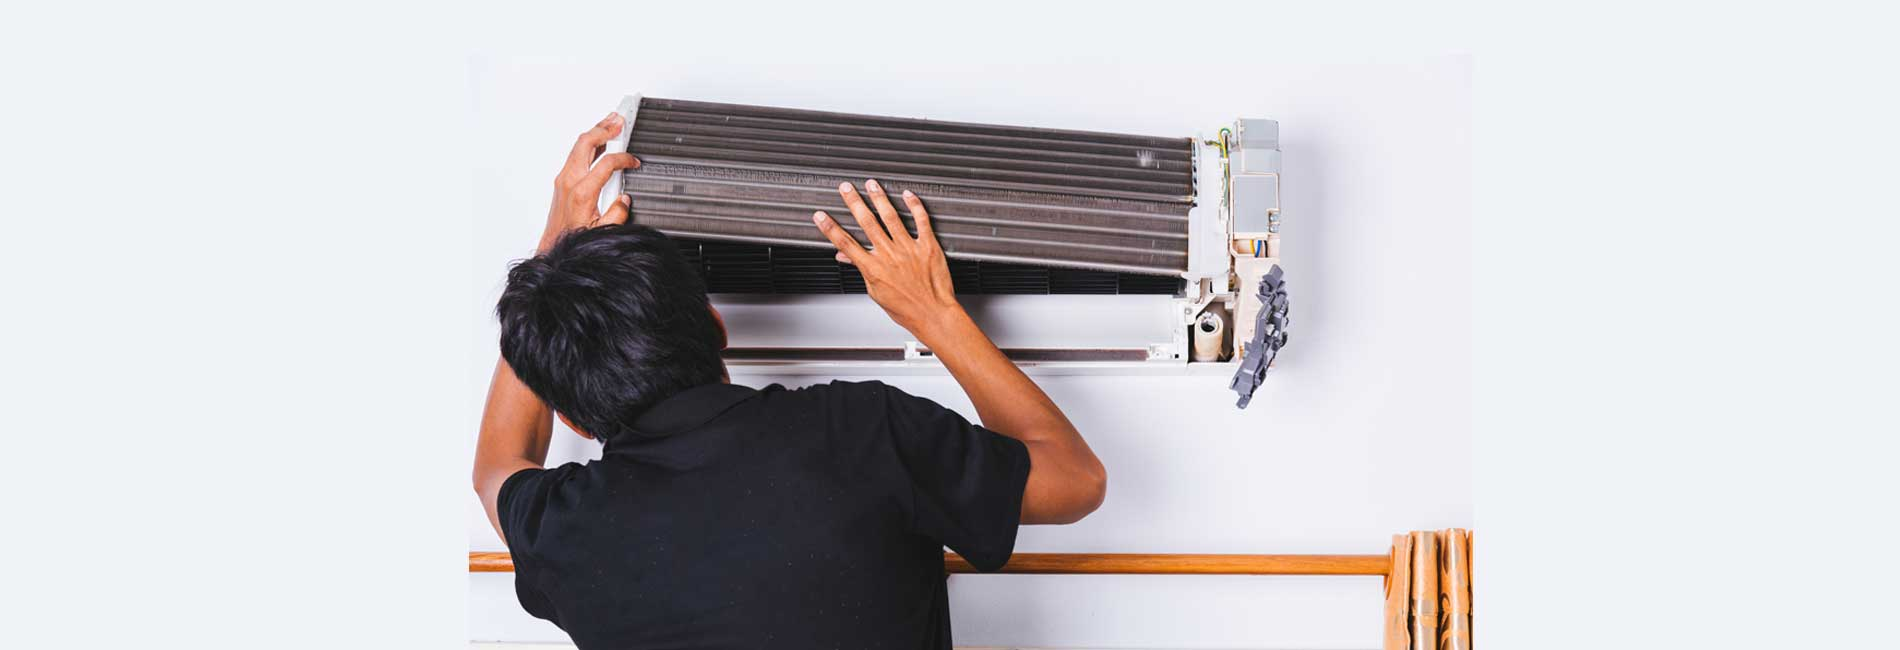 Bluestar Air Condition Service in Pallikaranai